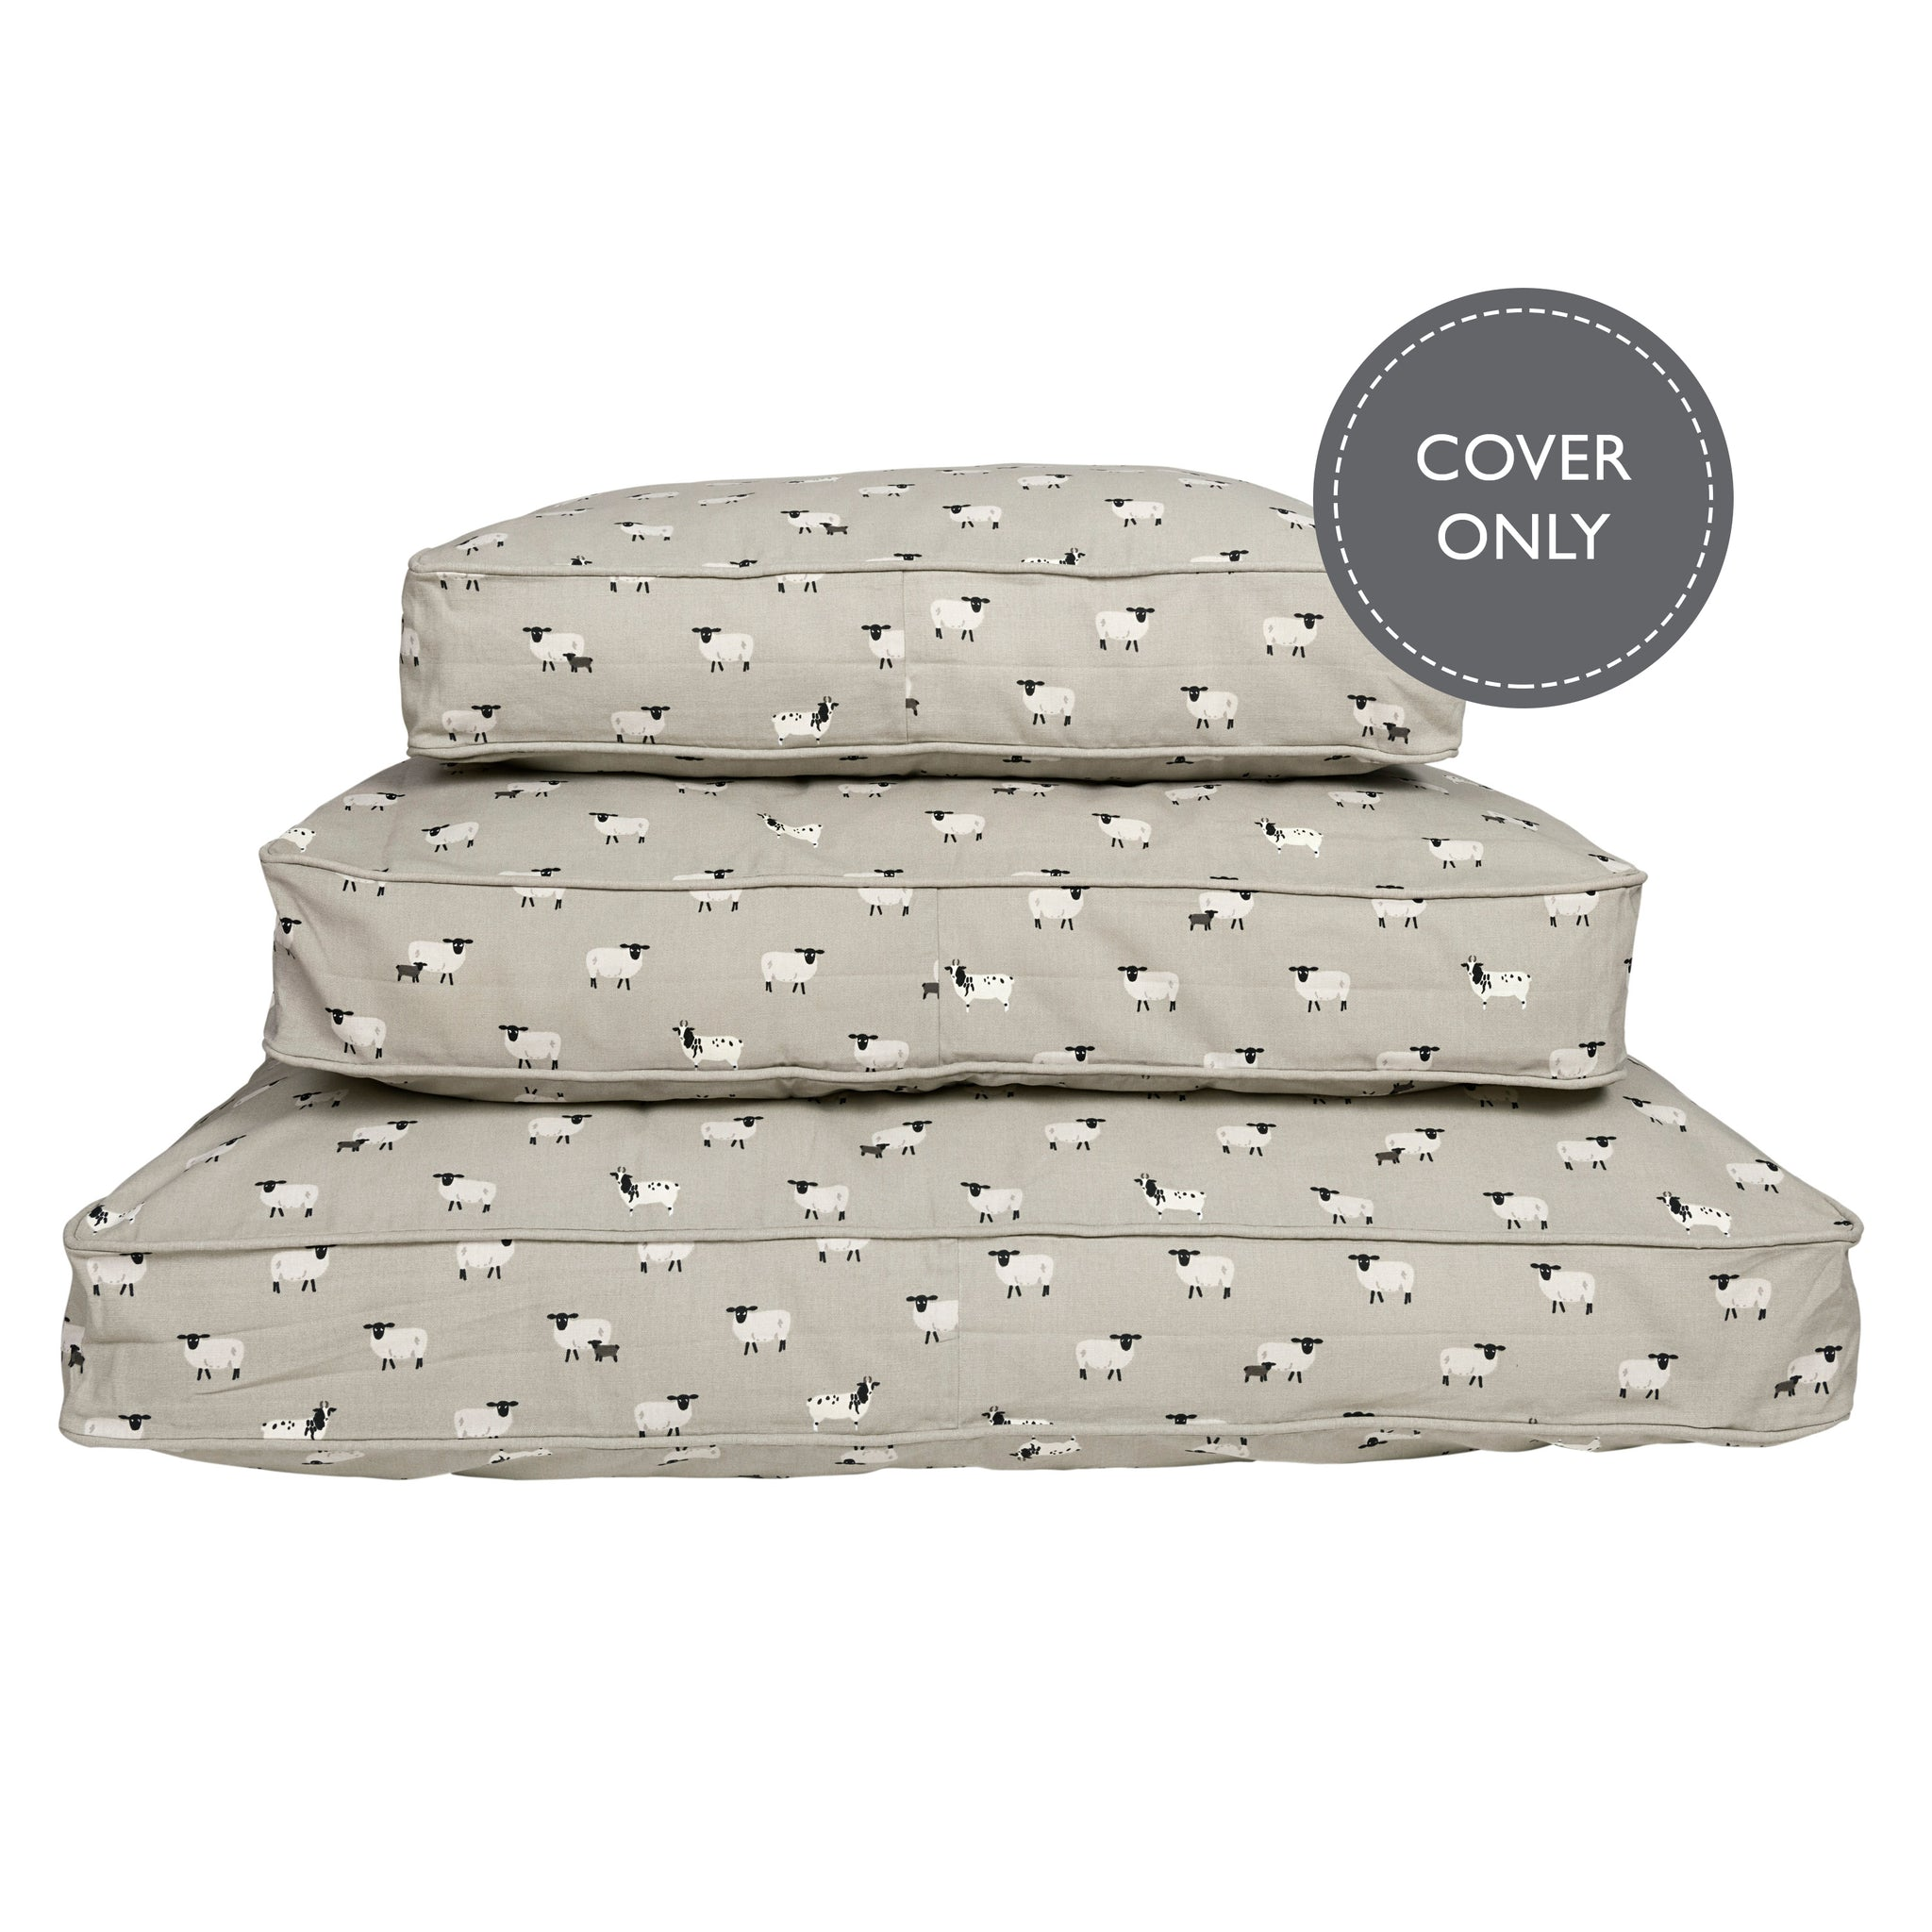 Sheep pet mattress cover by Sophie Allport